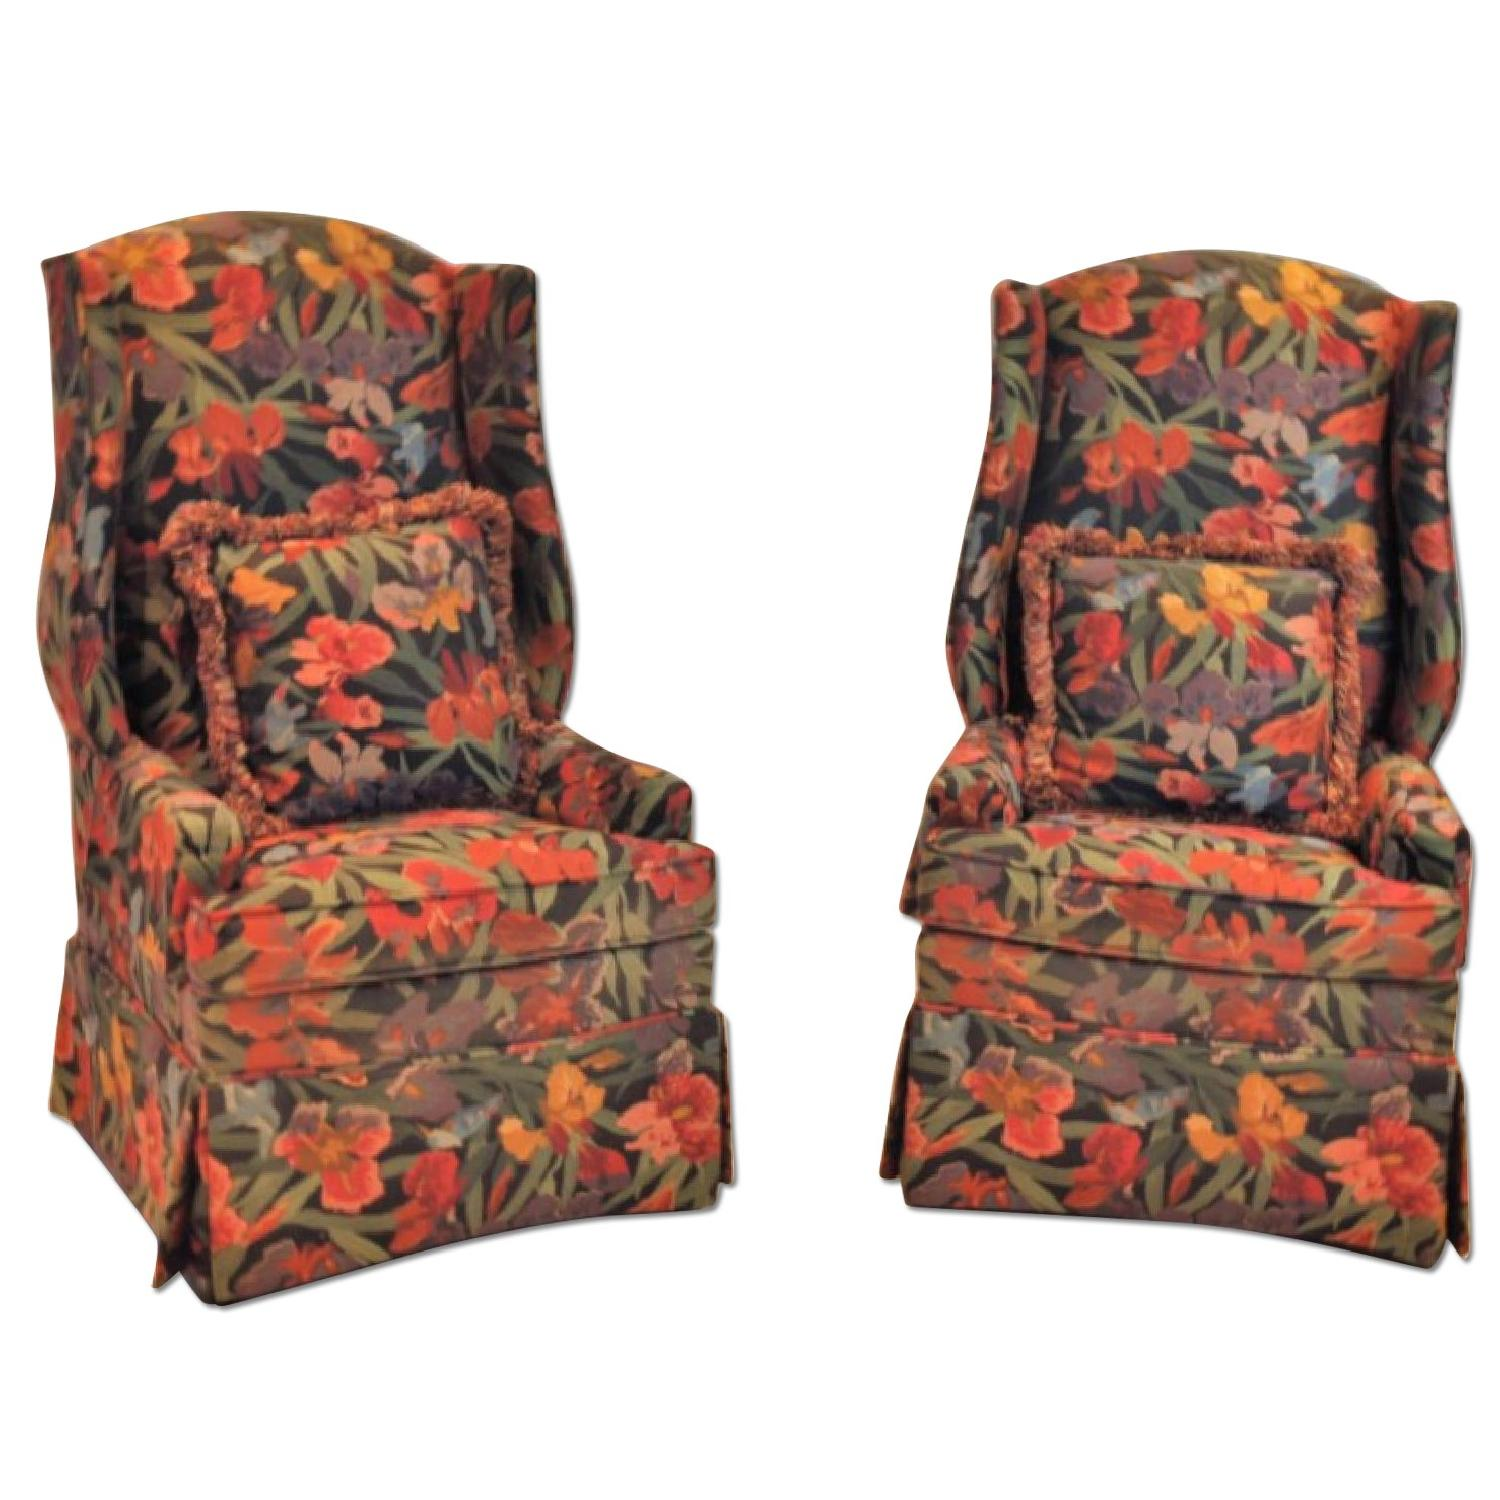 Custom Upholstered Wing Chairs